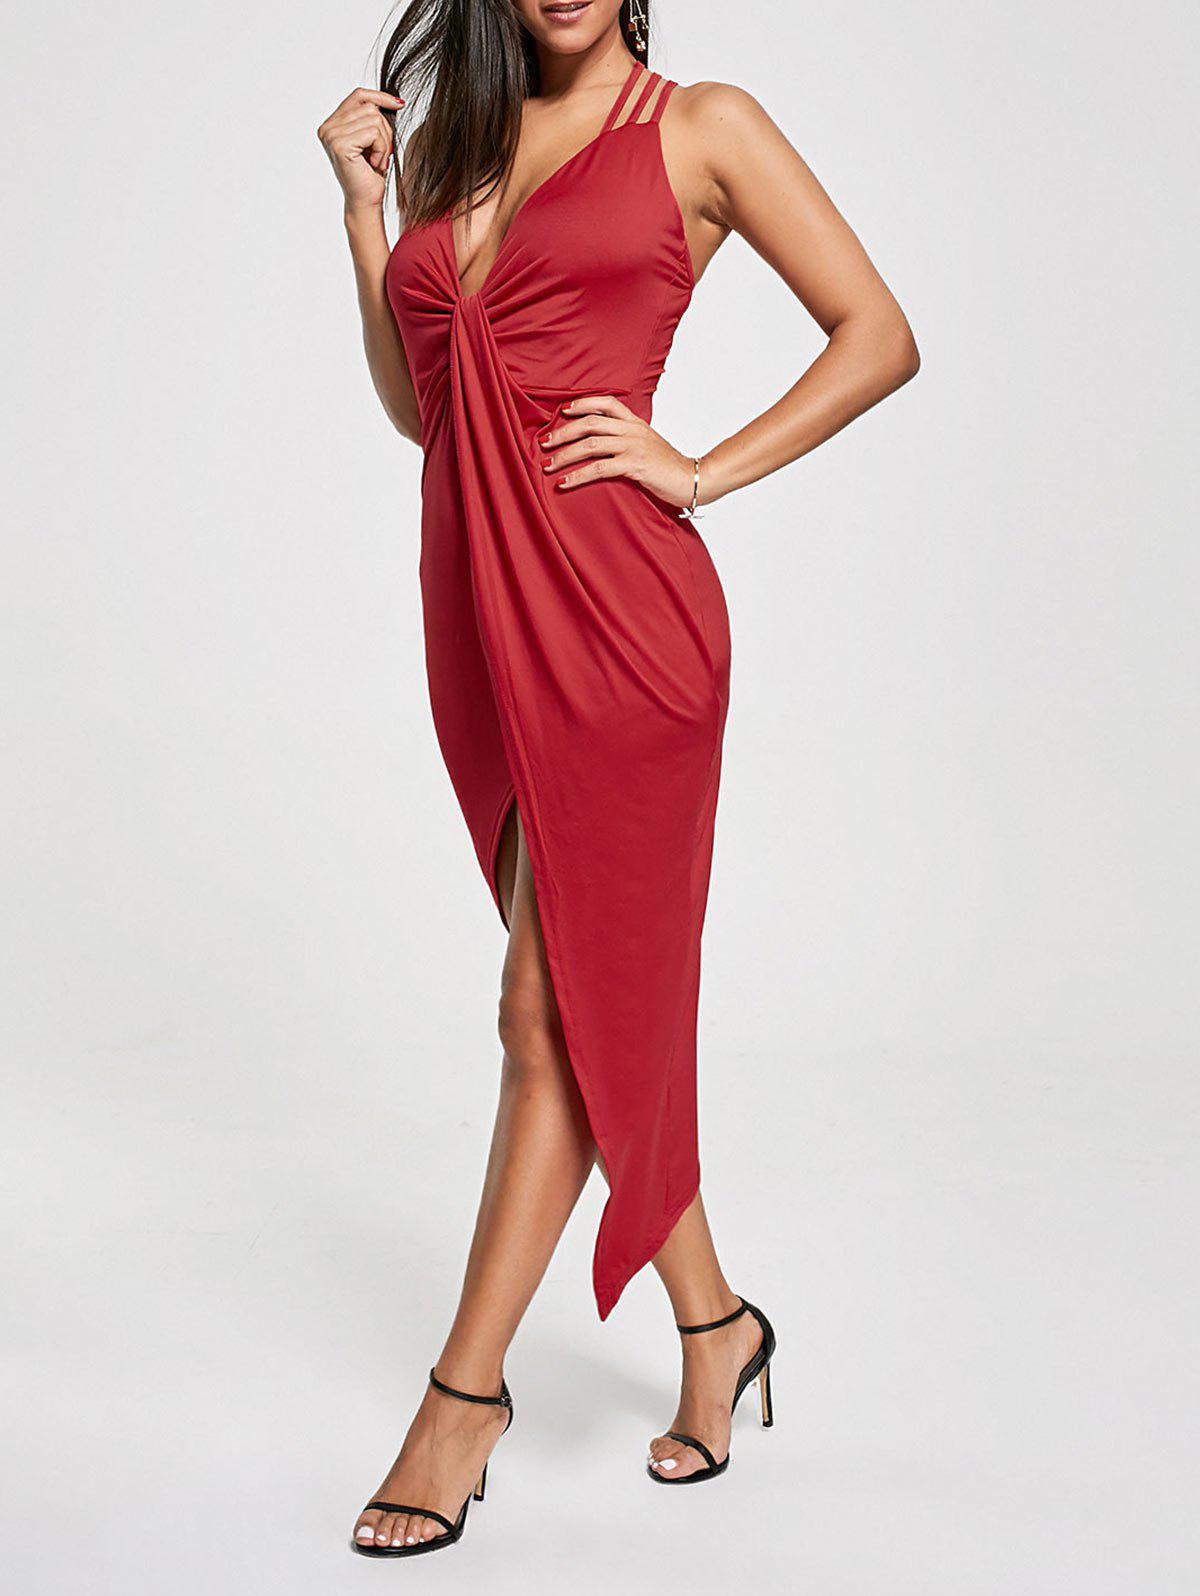 Criss Cross Cutout Front Twist Asymmetric Club Dress - RED L